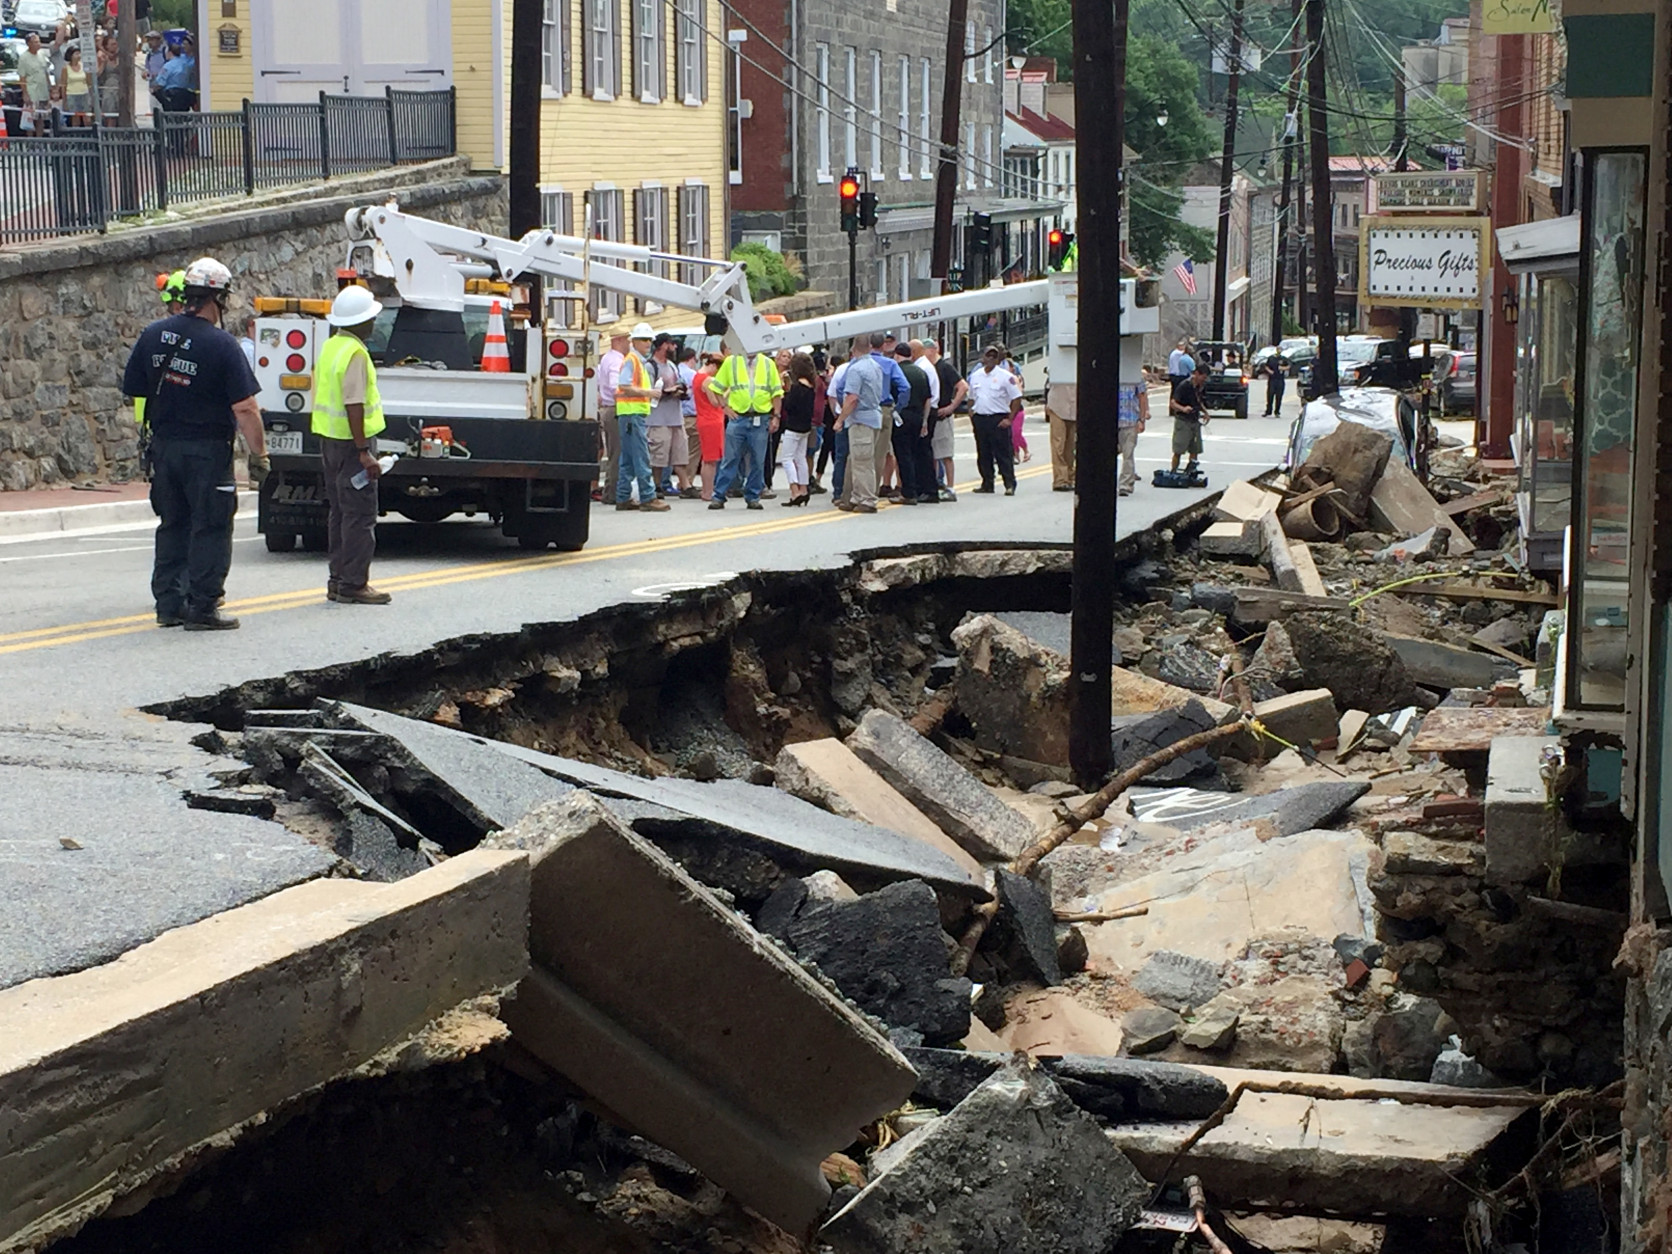 Workers gather by street damage after Saturday night's flooding in Ellicott City, Md., Sunday, July 31, 2016. Historic, low-lying Ellicott City, Maryland, was ravaged by floodwaters Saturday night, killing a few people and causing devastating damage to homes and businesses, officials said. (Kevin Rector/The Baltimore Sun via AP)